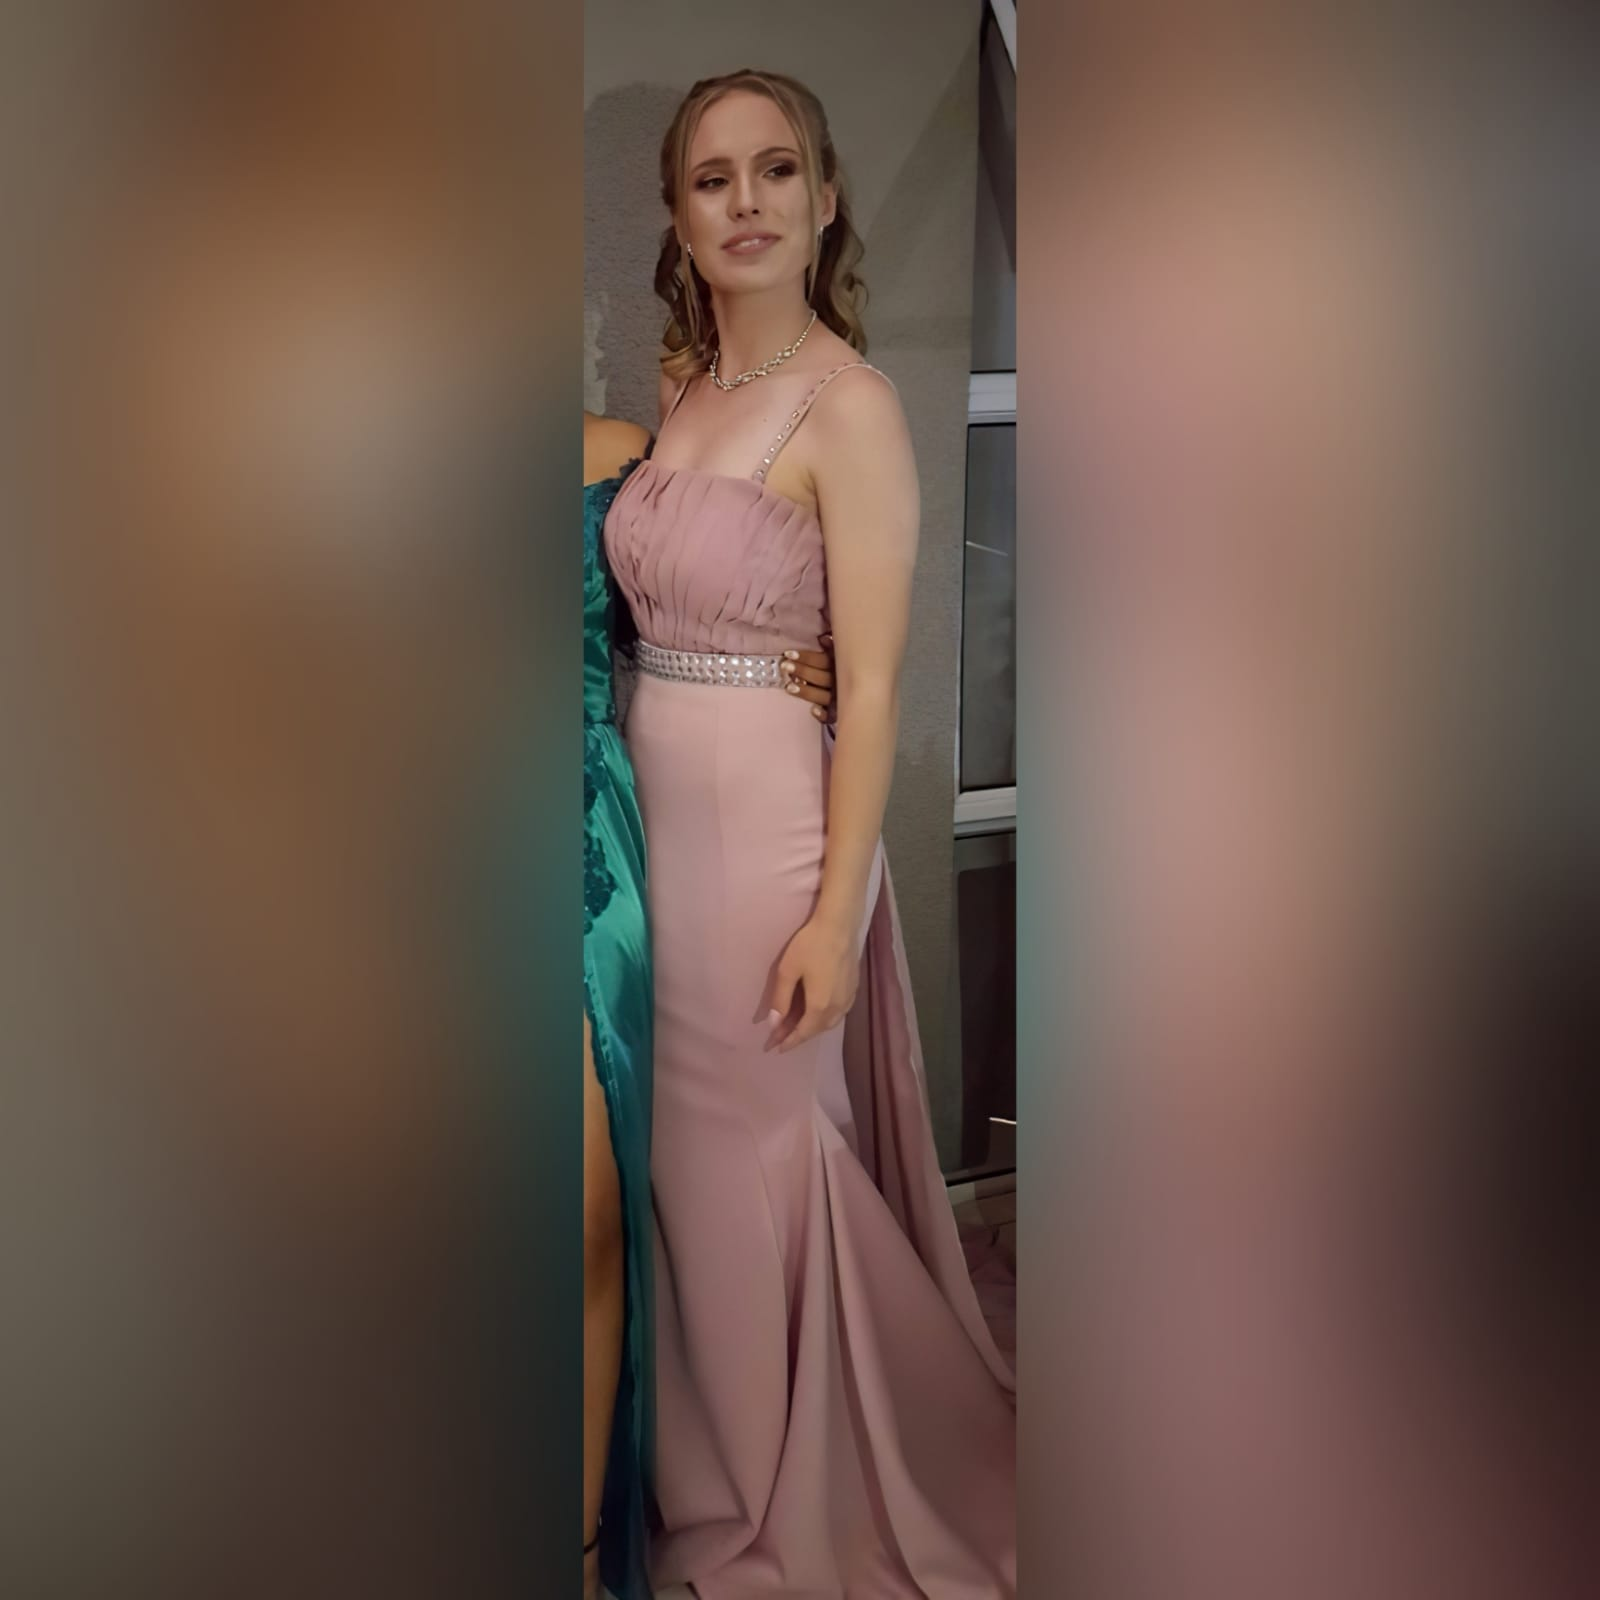 Dusty pink soft mermaid matric dress with a pleated bodice 1 dusty pink soft mermaid matric dress with a pleated bodice, with a train. Extra detachable chiffon train with a beaded belt and removable shoulder straps